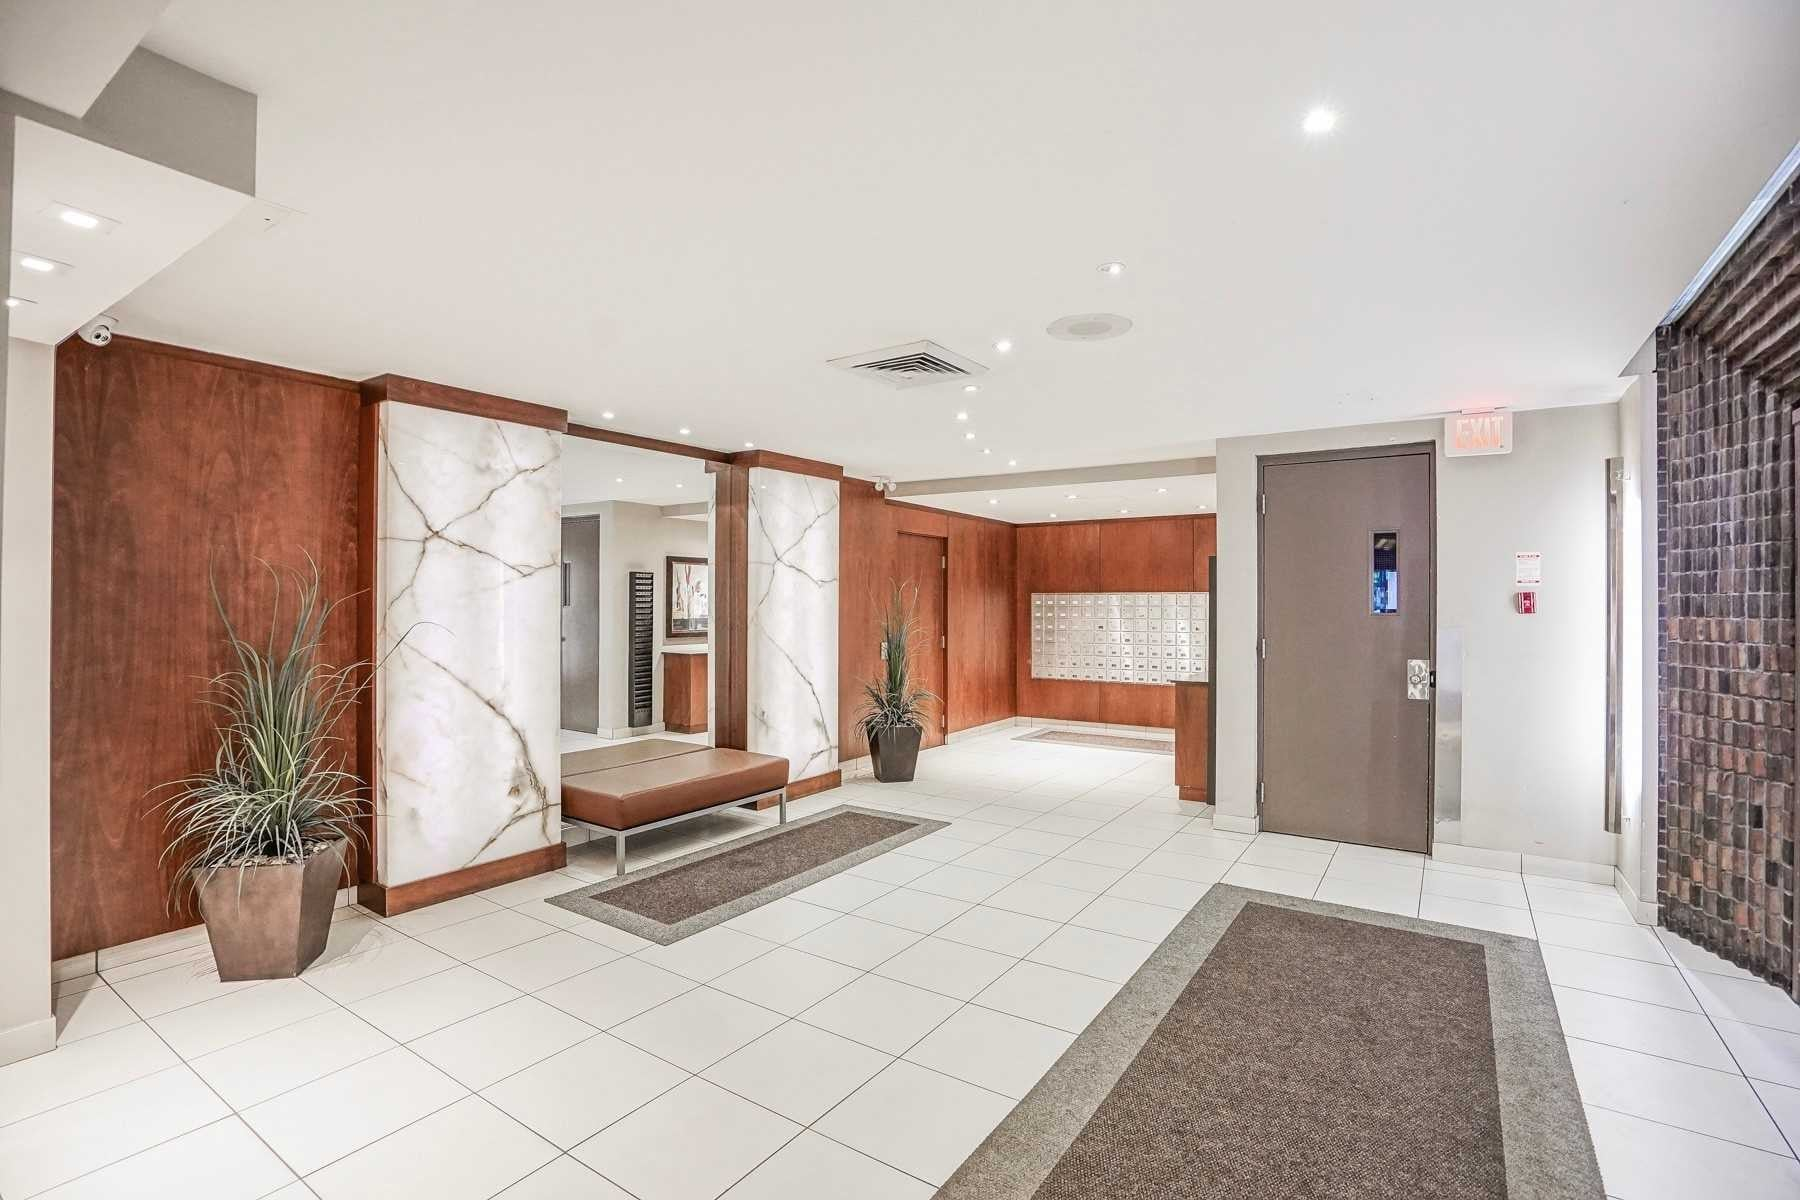 Buliding: 720 Spadina Avenue, Toronto, ON